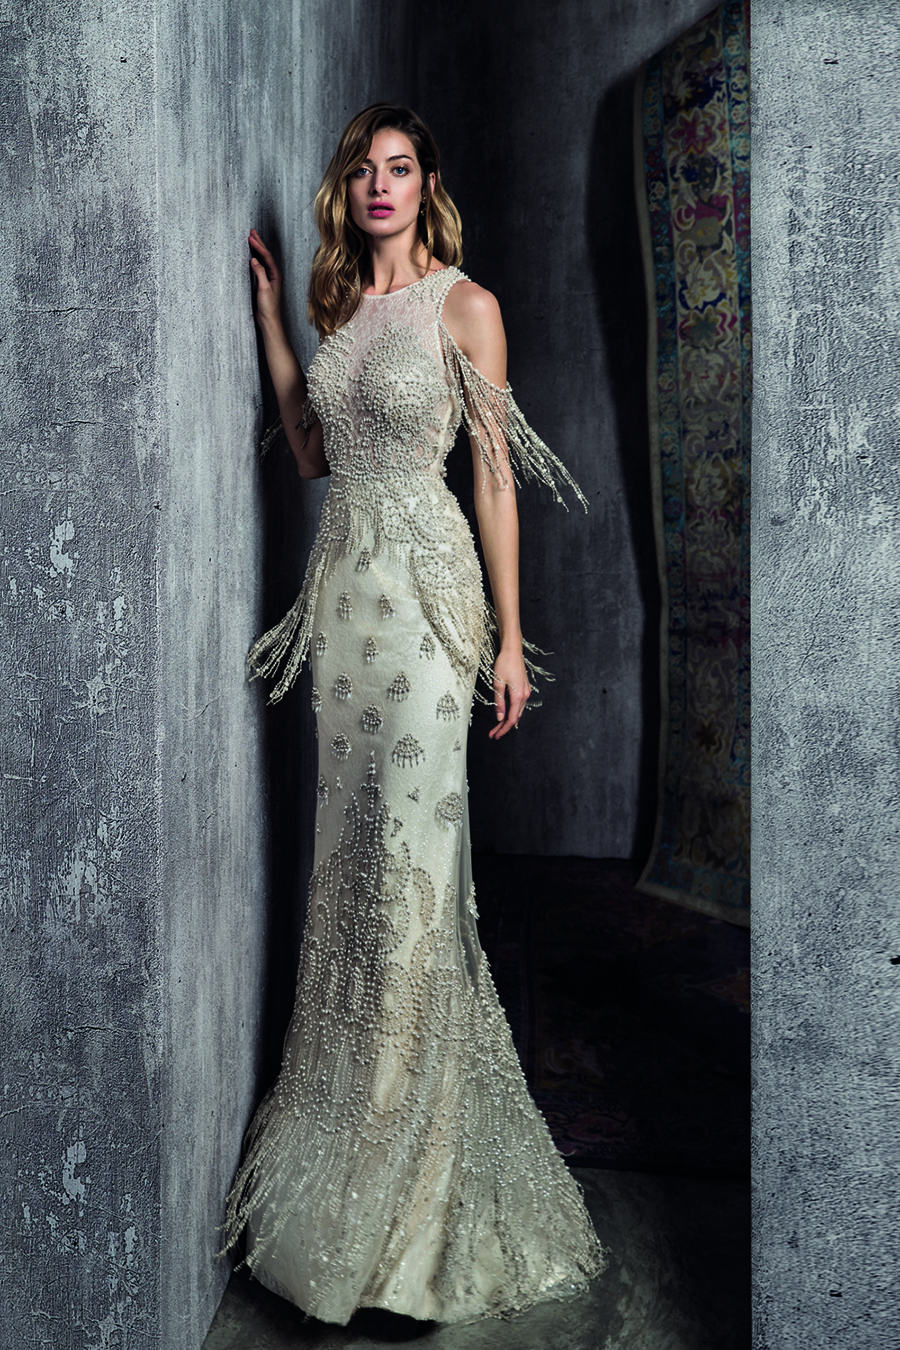 Stunning Exquisite Bridal Gowns In Newcastle Upon Tyne X Popular Wedding Dresses Mermaid Evening Dresses Wedding Dress Fishtail